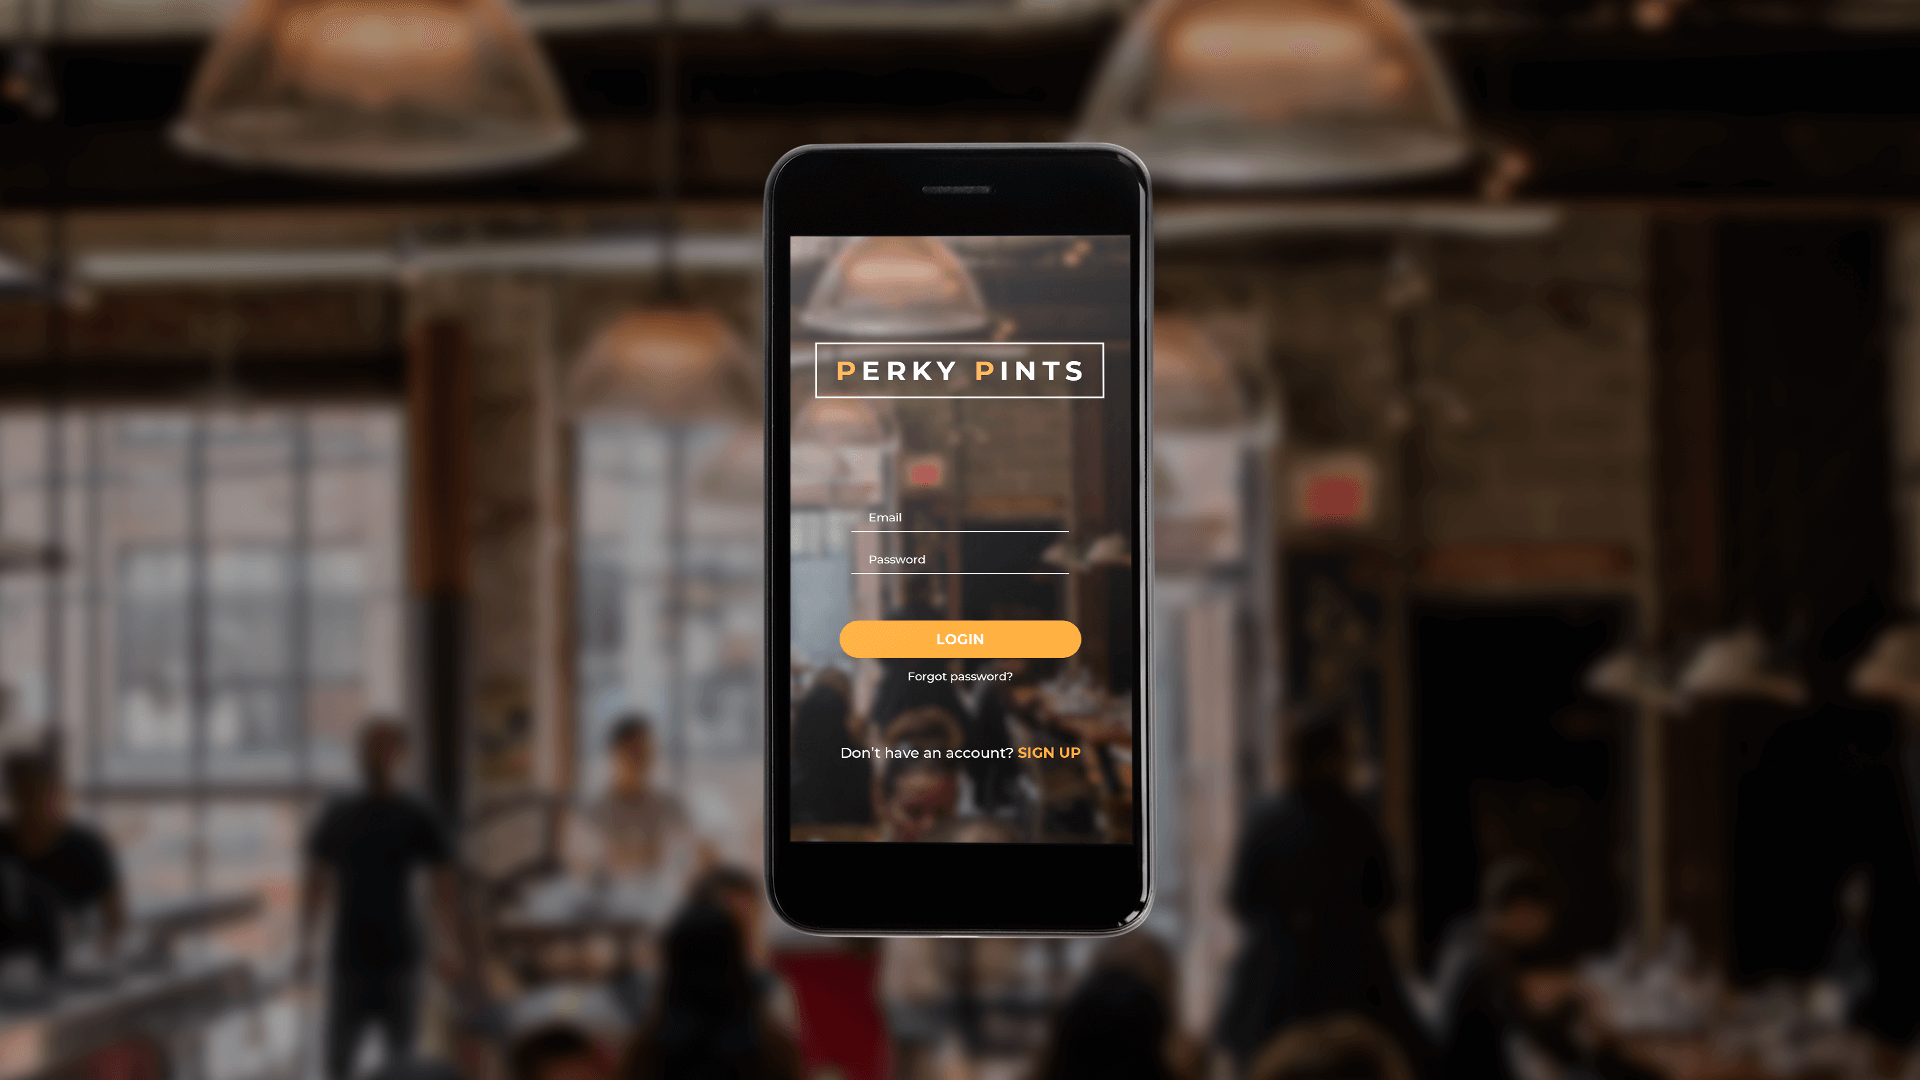 How We Merged Beer and Software to Build a Mobile Rewards App